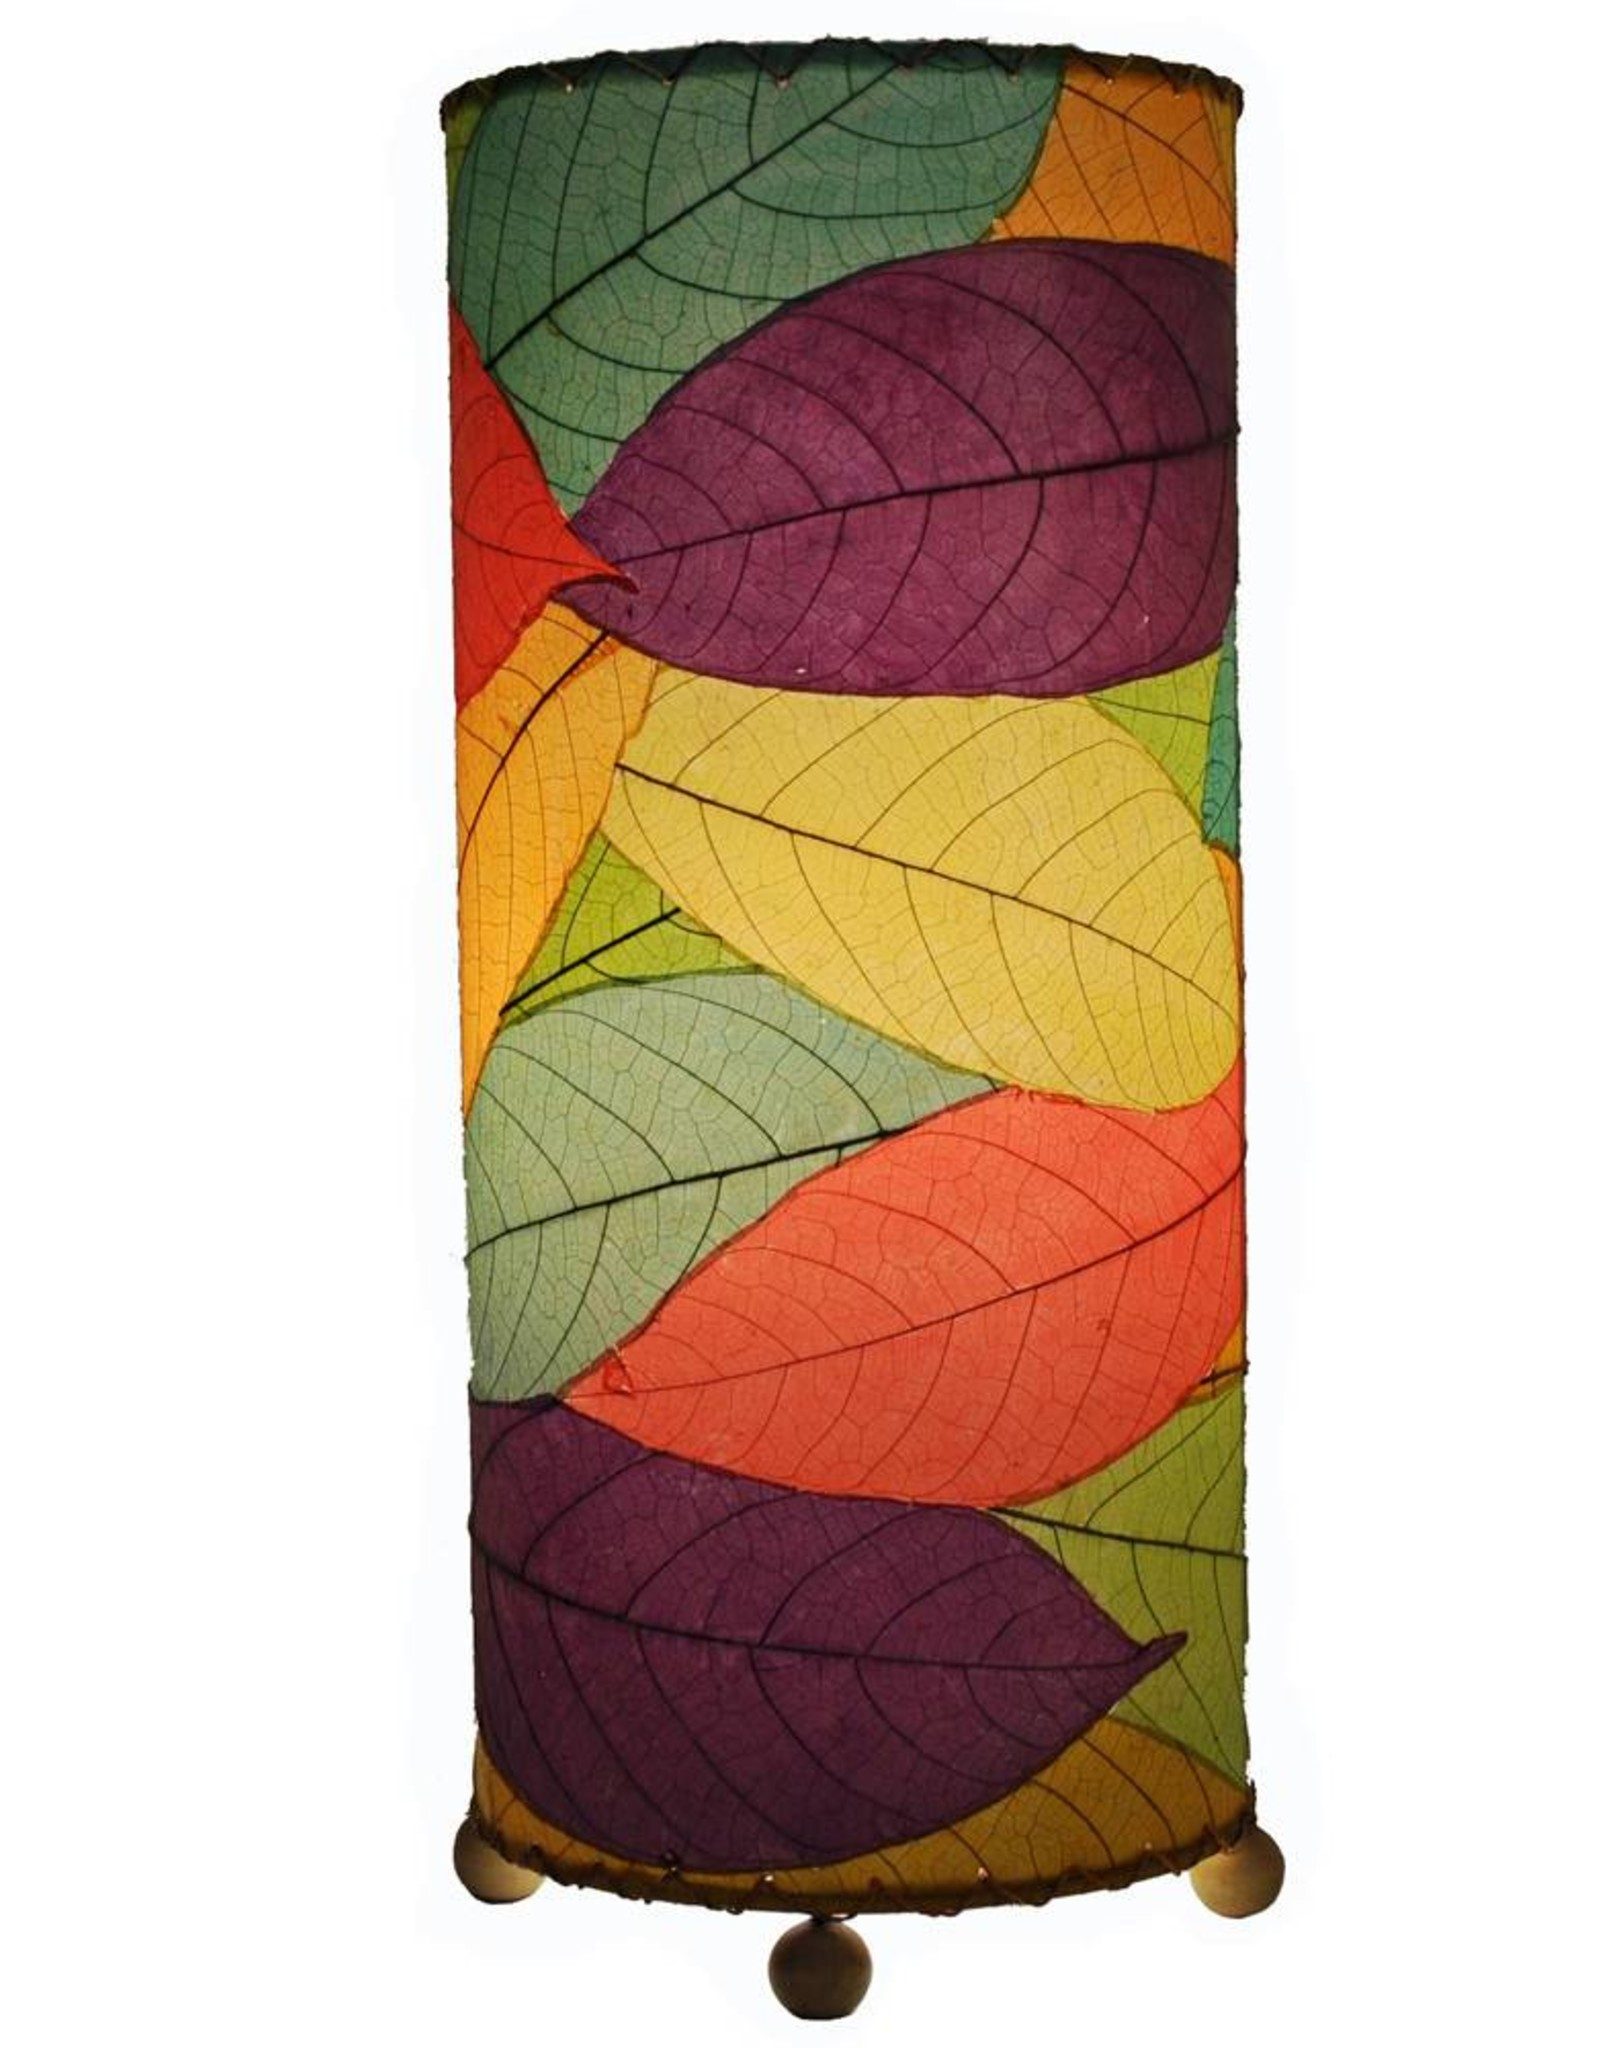 Eangee Cylinder Cocoa Lamp +6 Colors